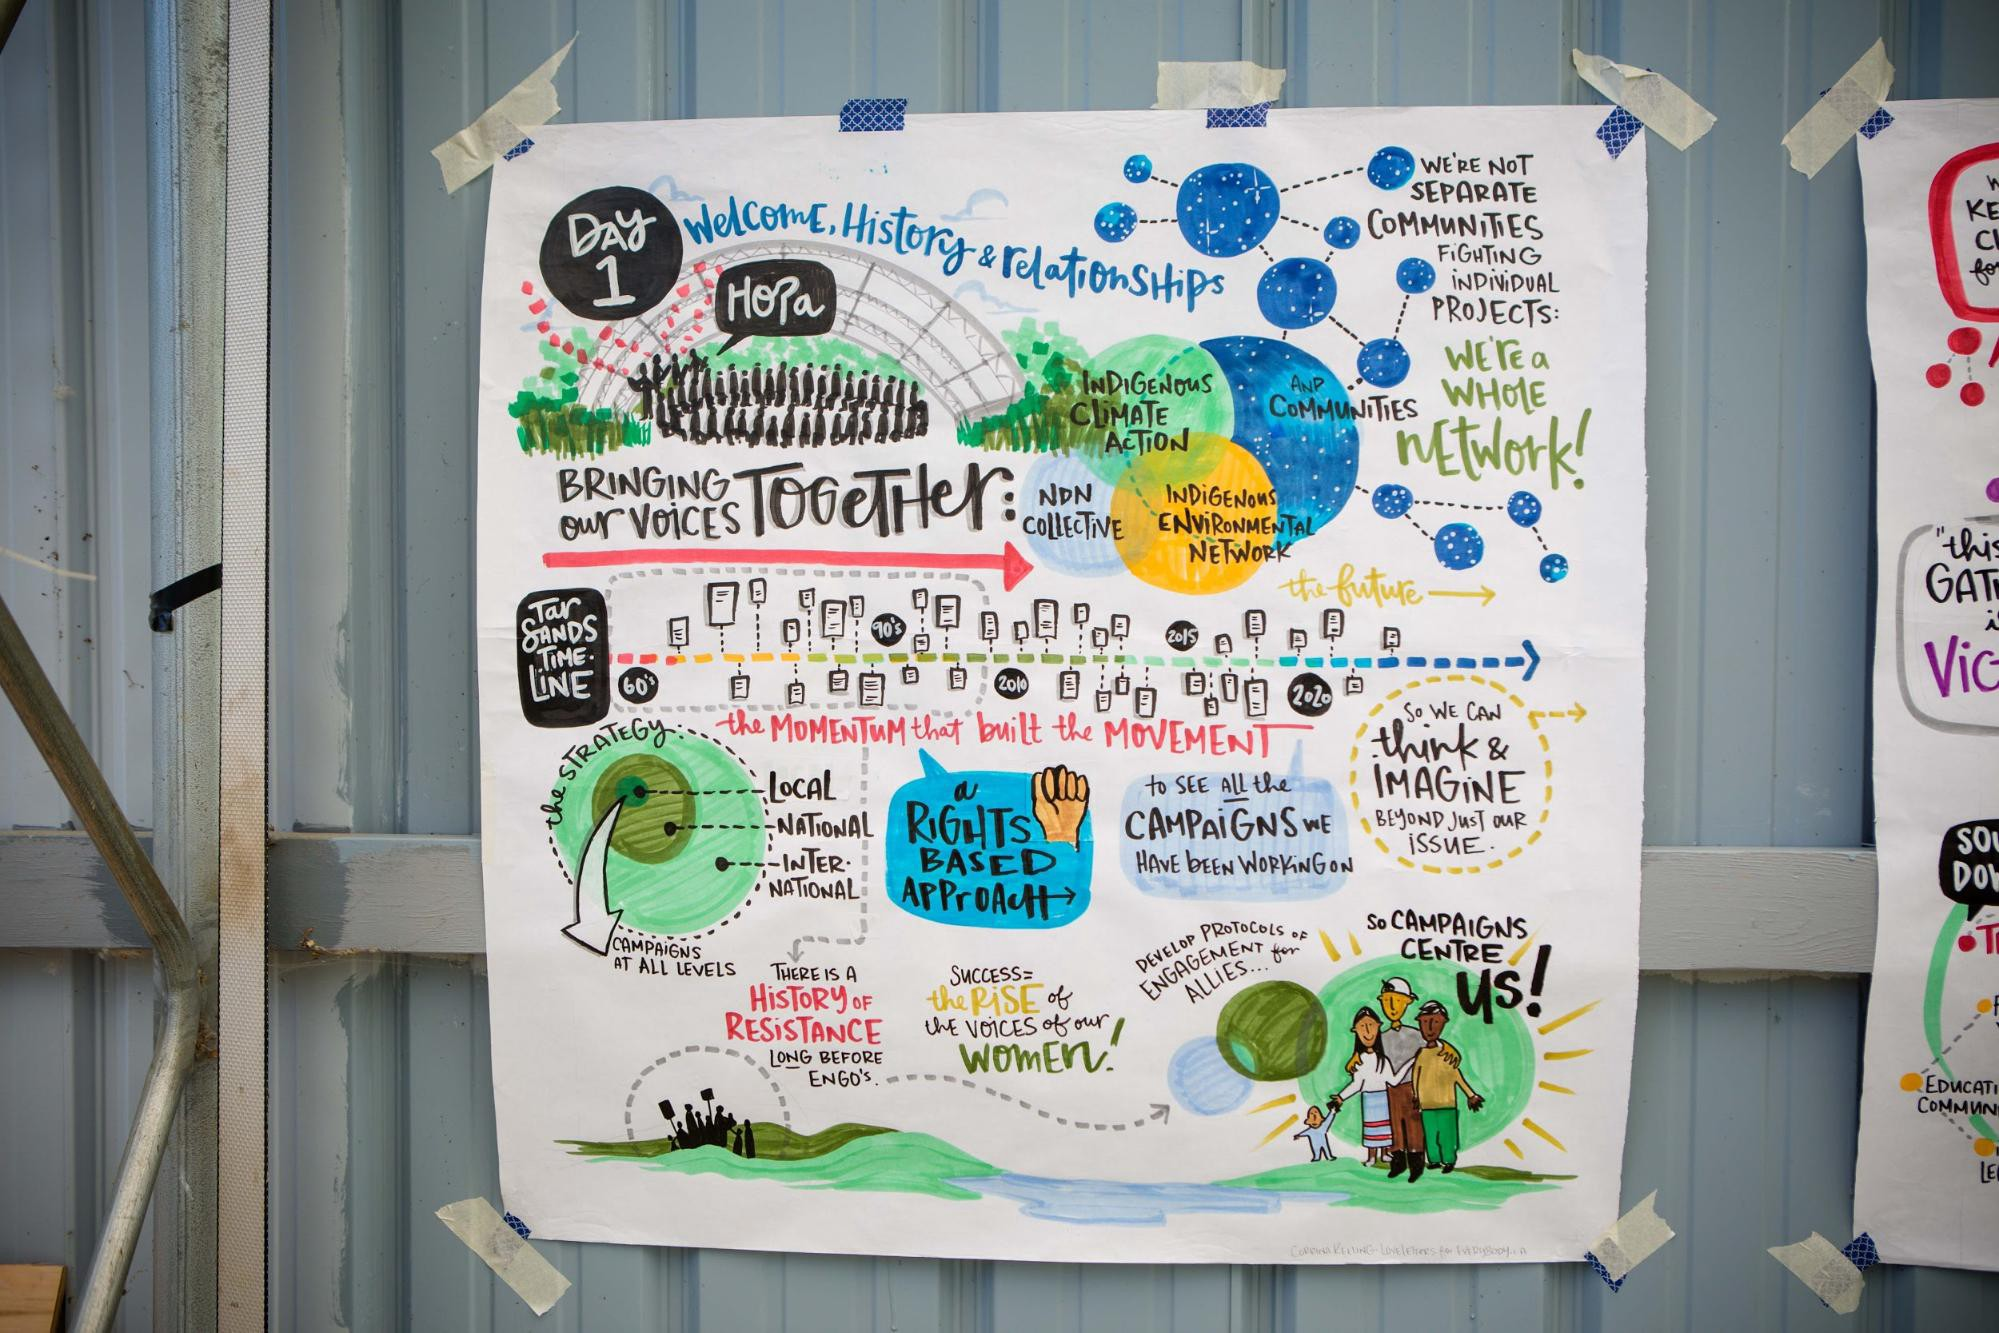 A graphic note from the strategy summit which brought together leaders across North America fighting tar sands at the source.